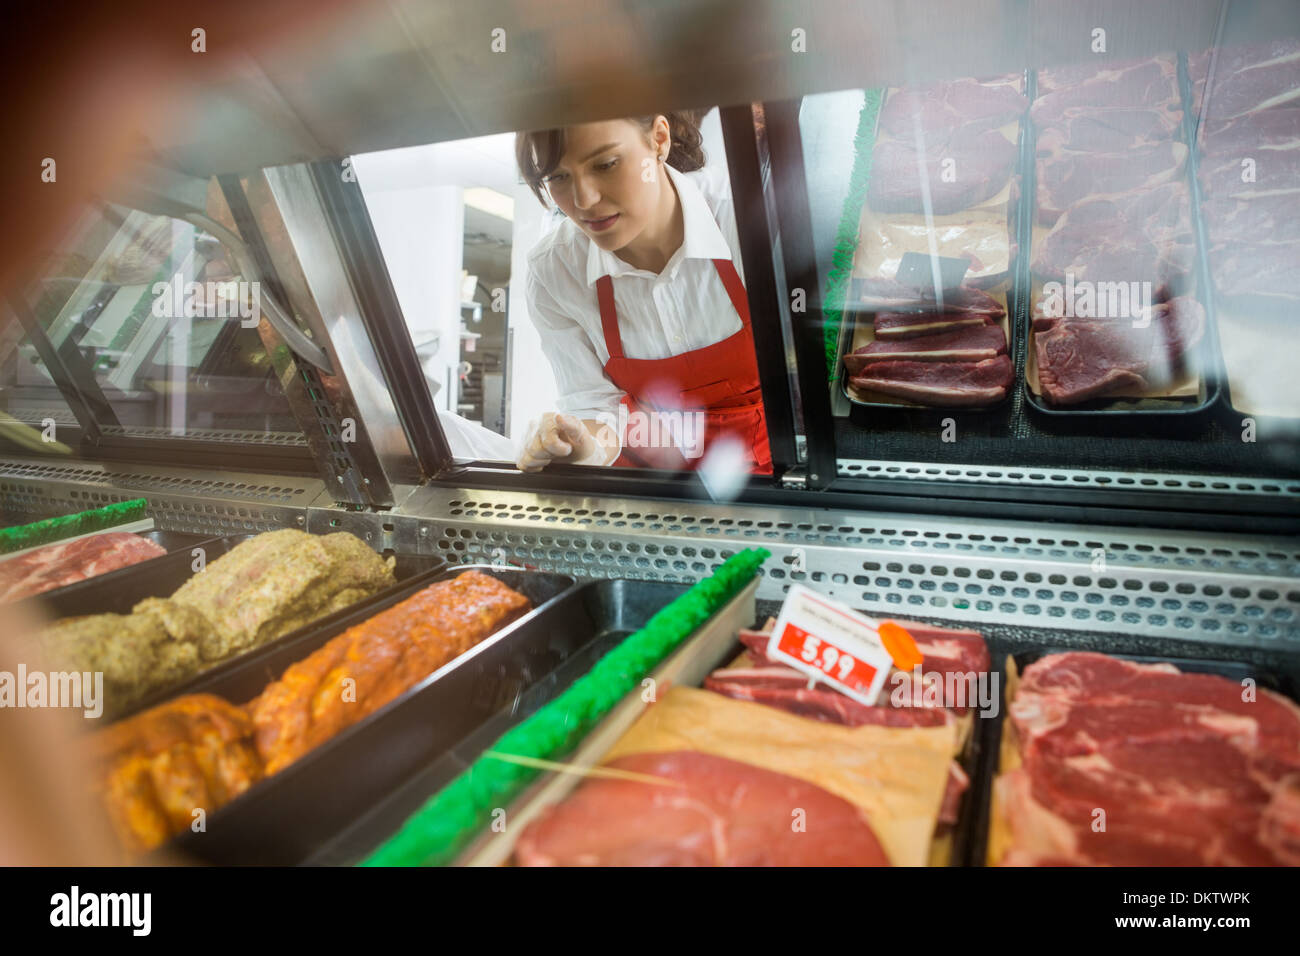 Saleswoman Looking At Variety Of Meat Displayed In Shop - Stock Image